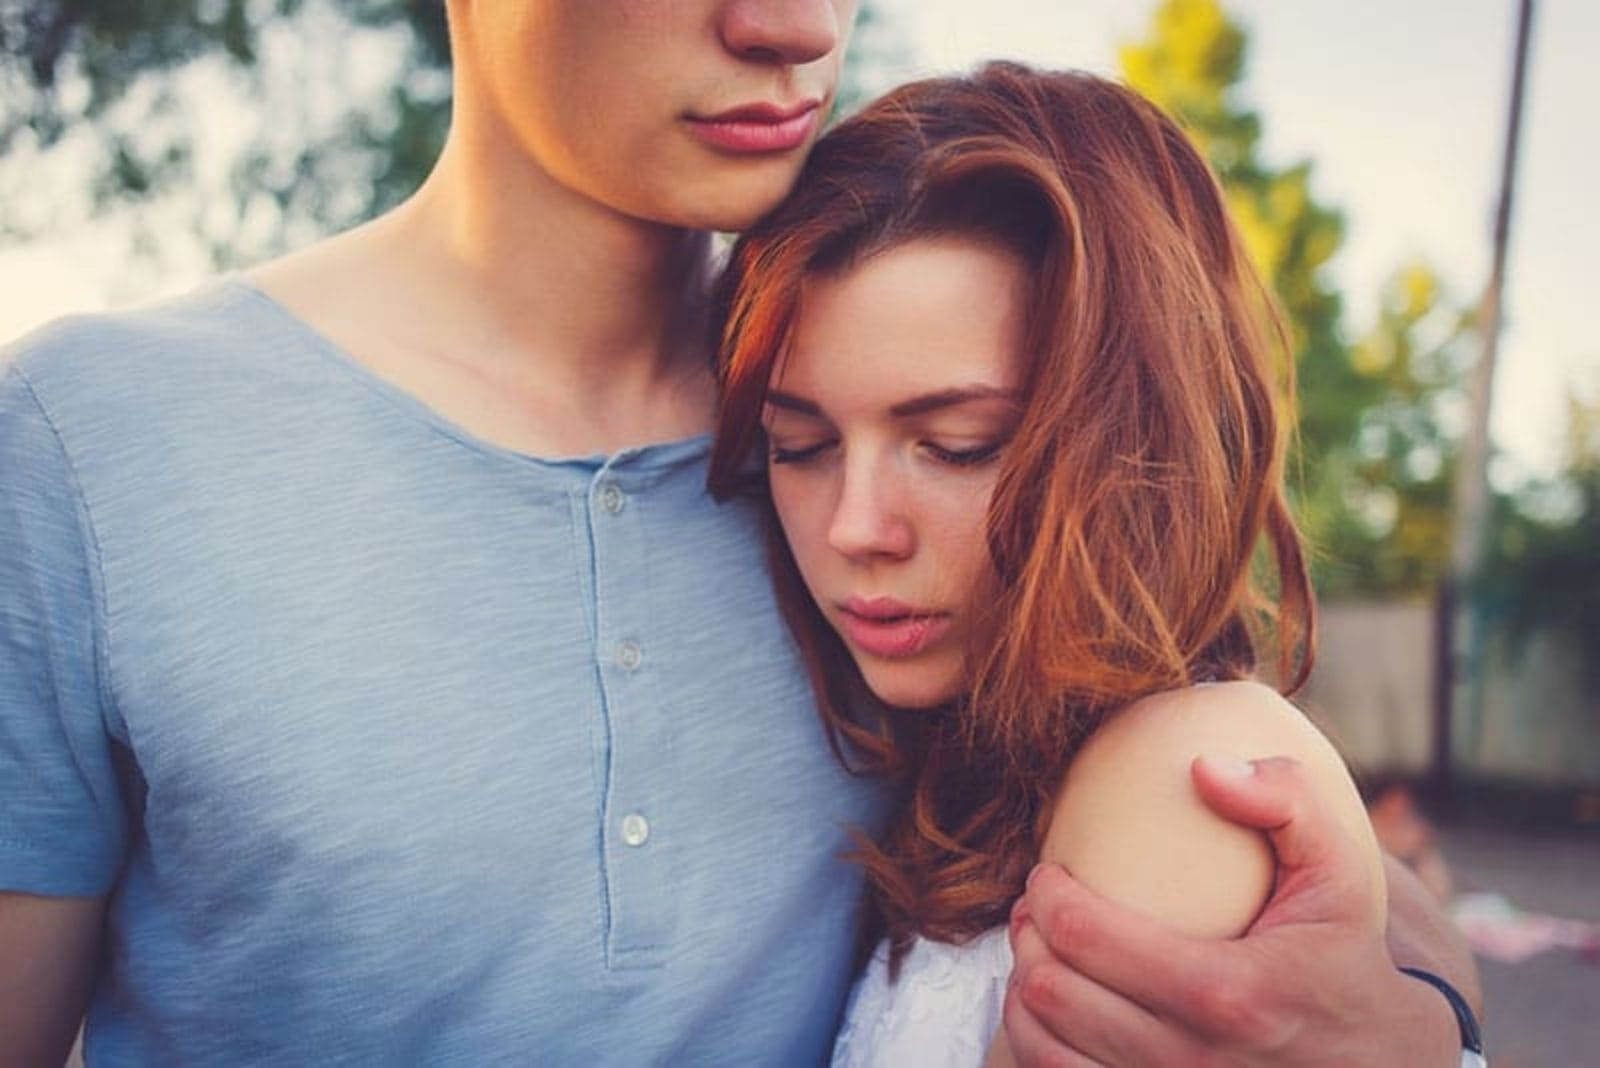 How To Know If He's Cheating On You And Why, According To His Zodiac Sign